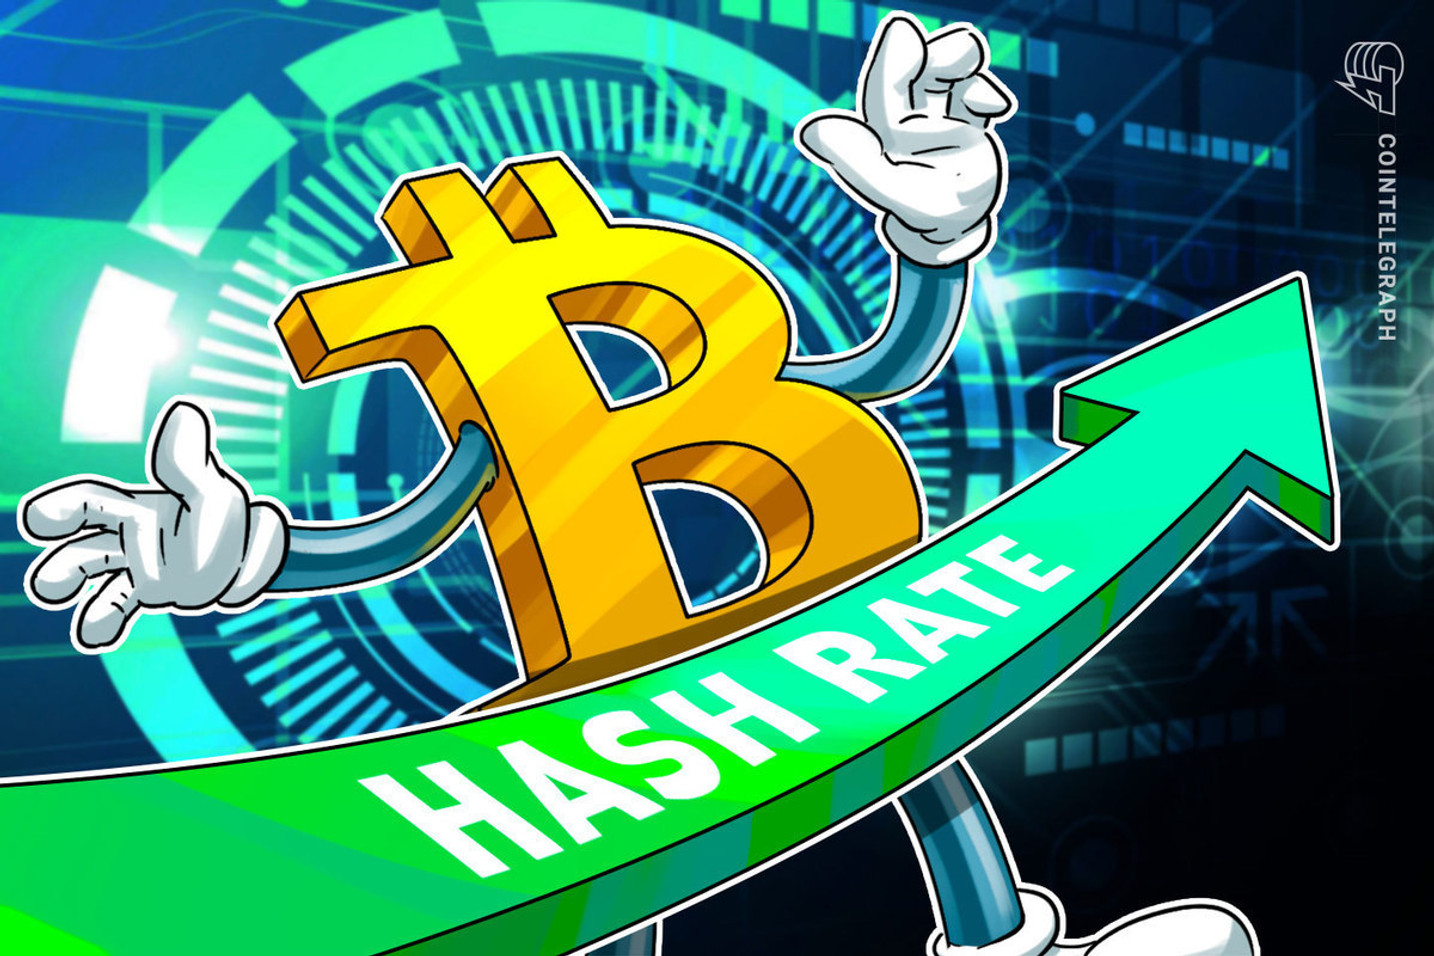 37% Expect Bitcoin's Hashrate to be Higher After Halving: Poll